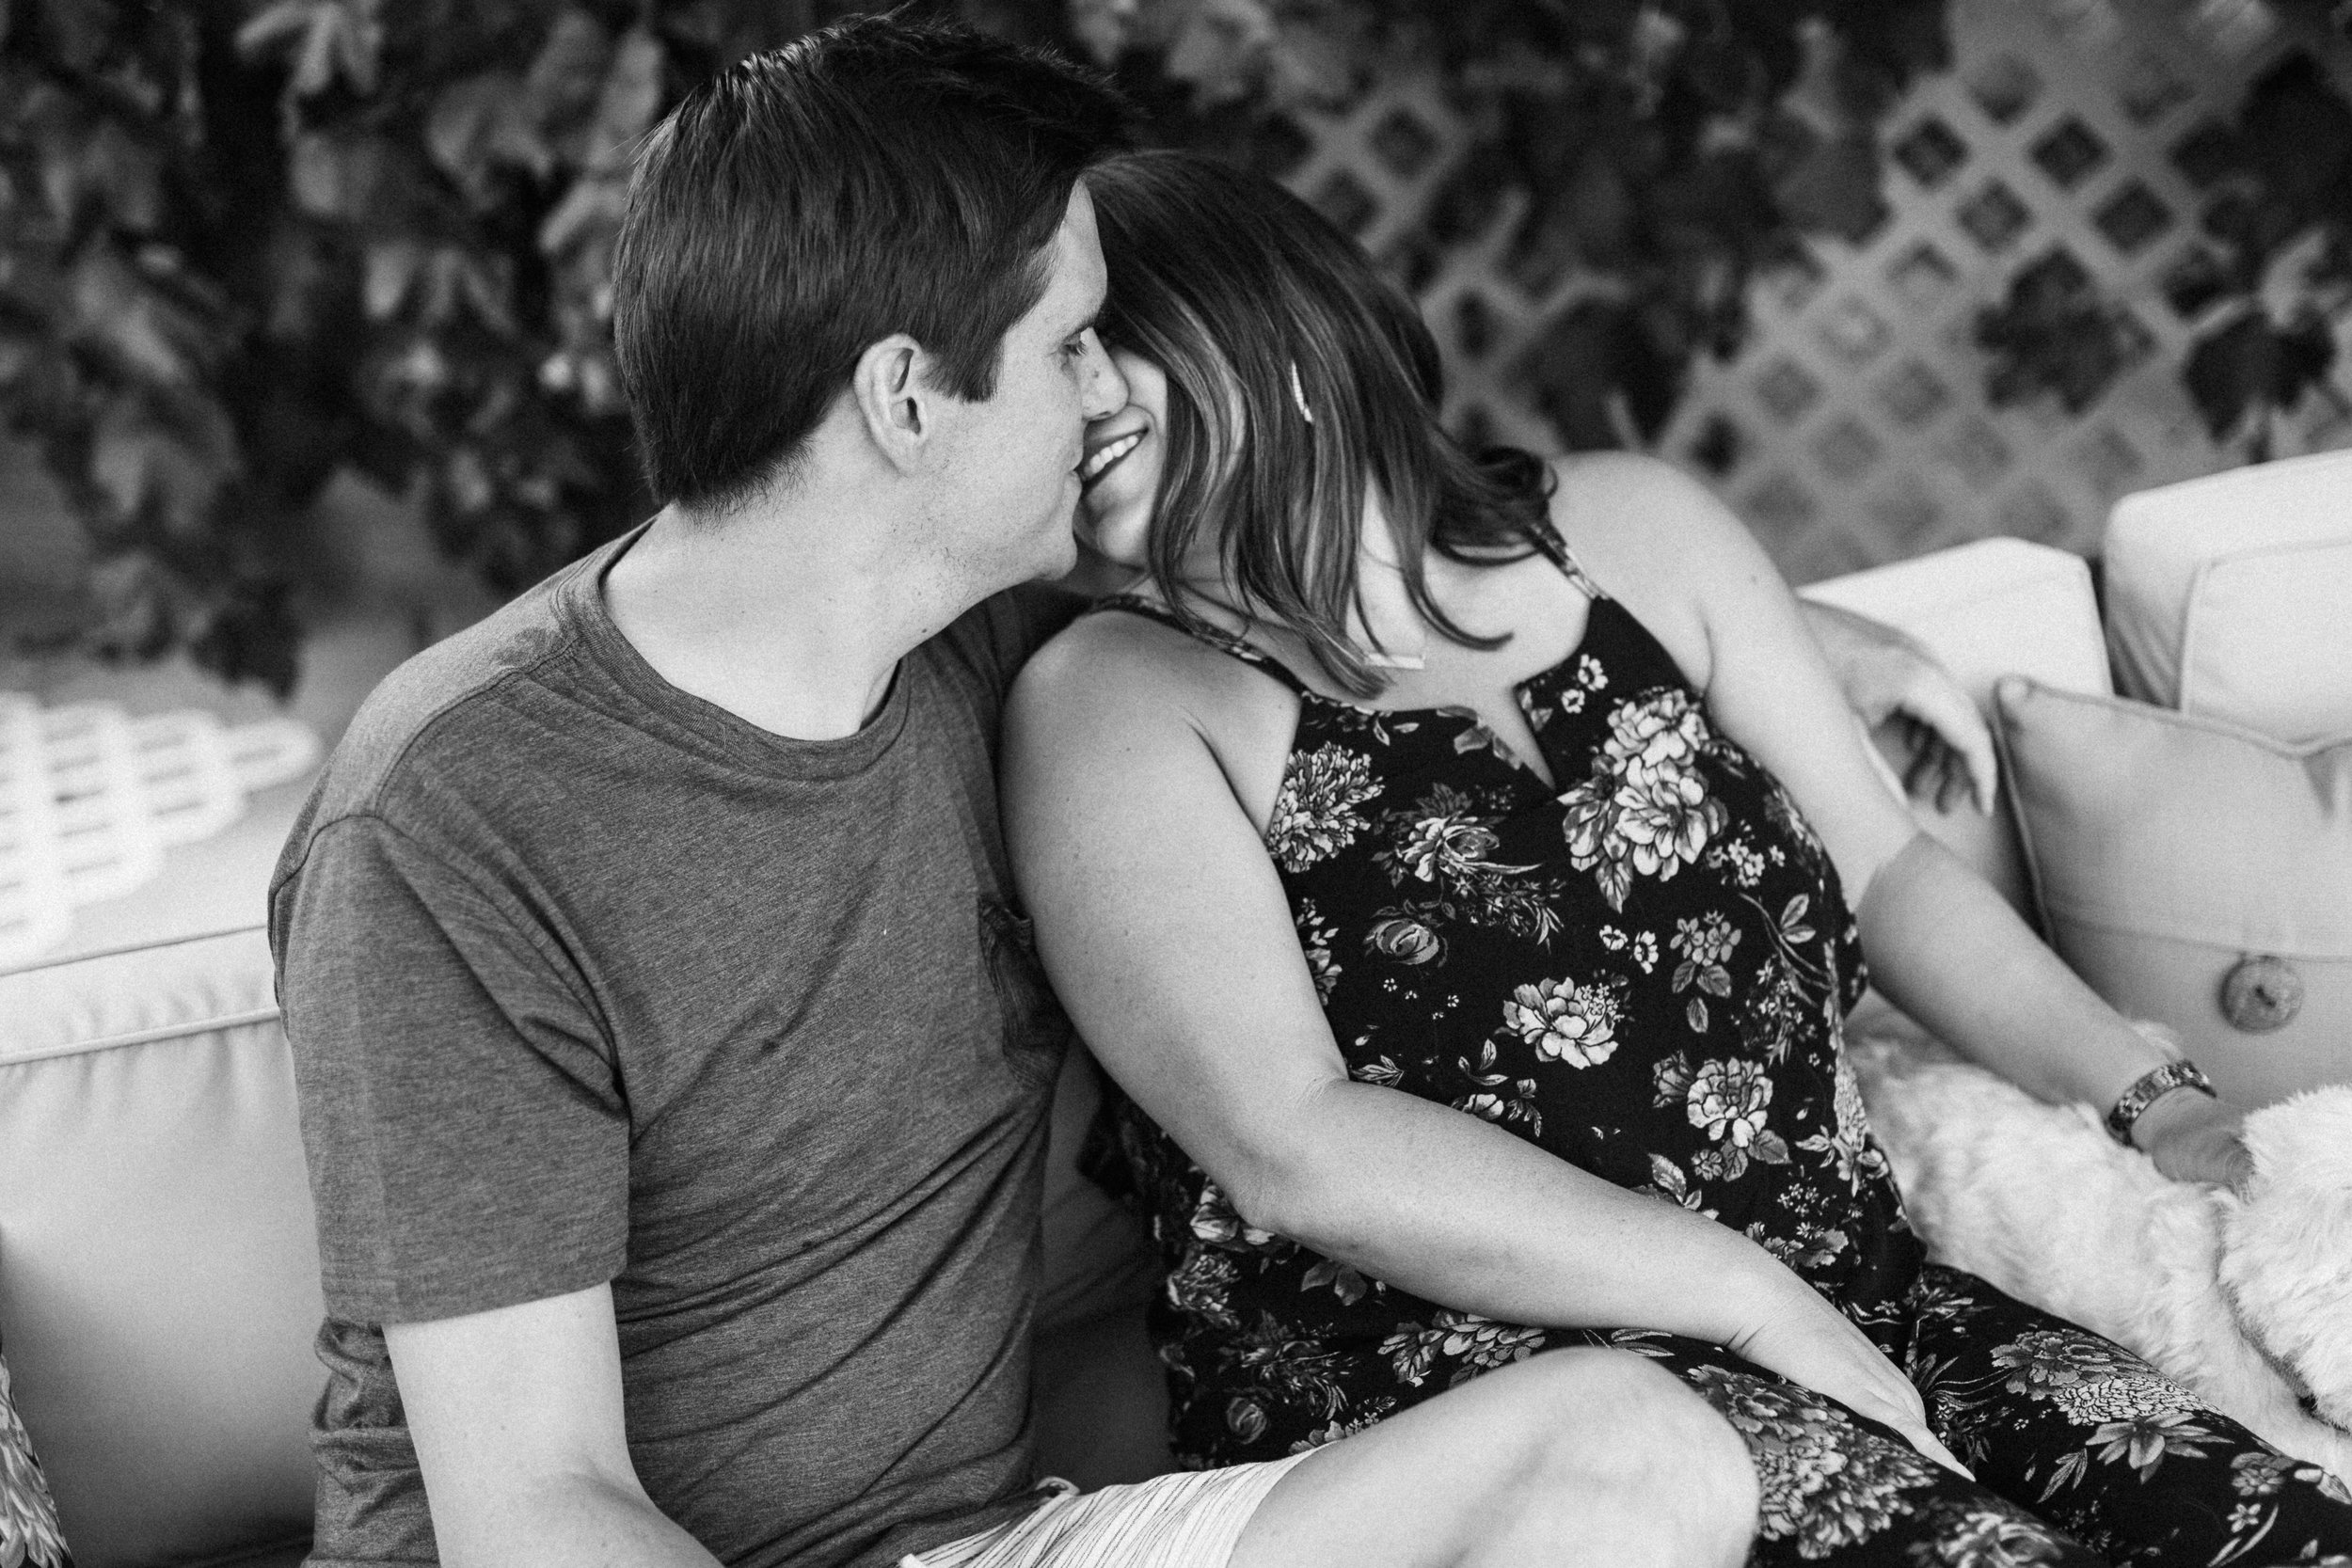 candid-black-and-white-intimate-photo-of-couple-going-in-for-kiss-holladay-utah